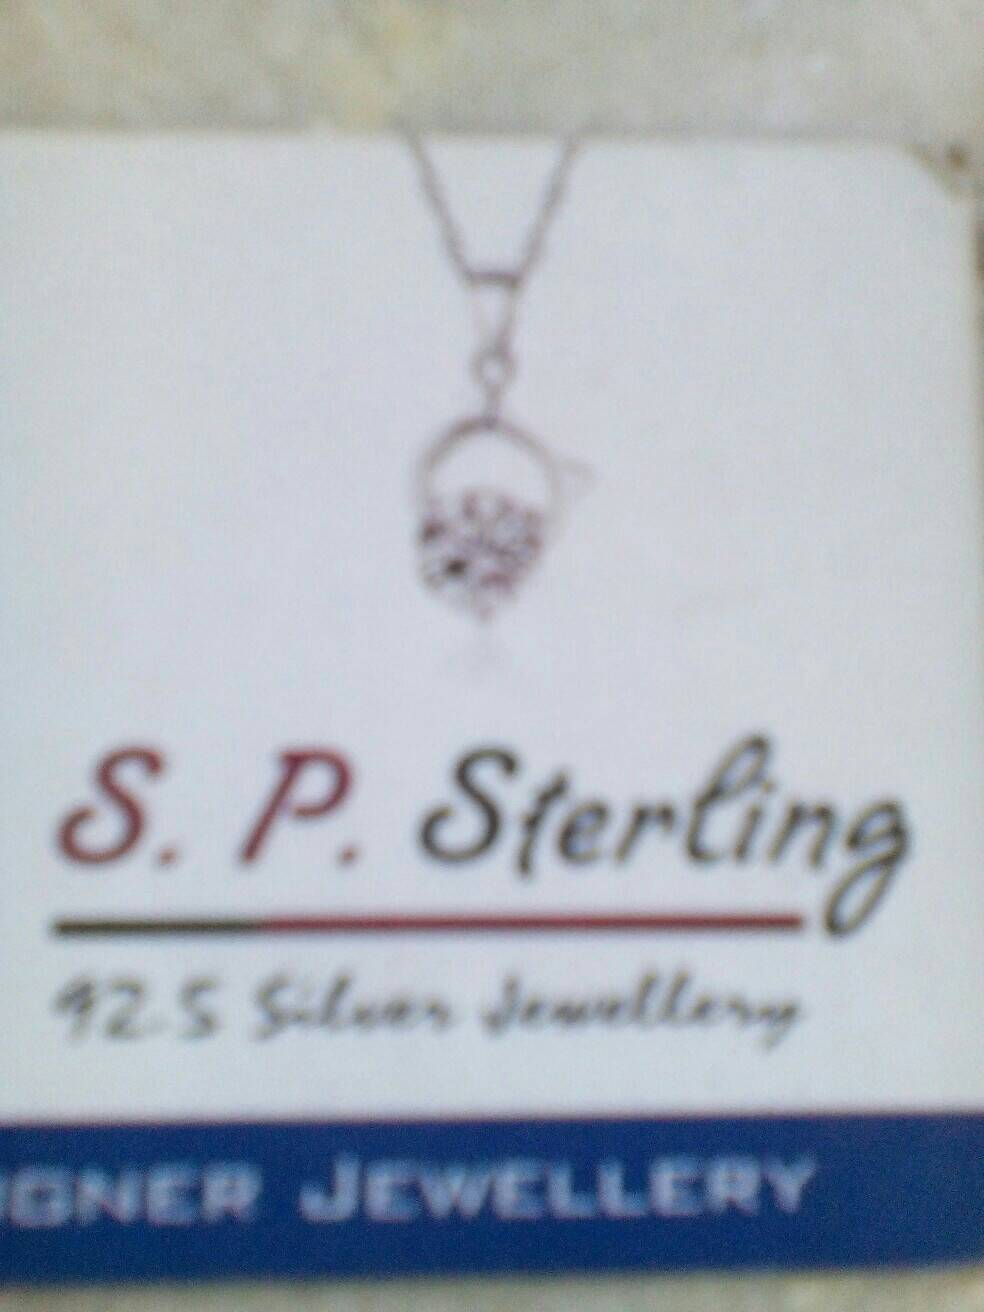 S. P. Sterling